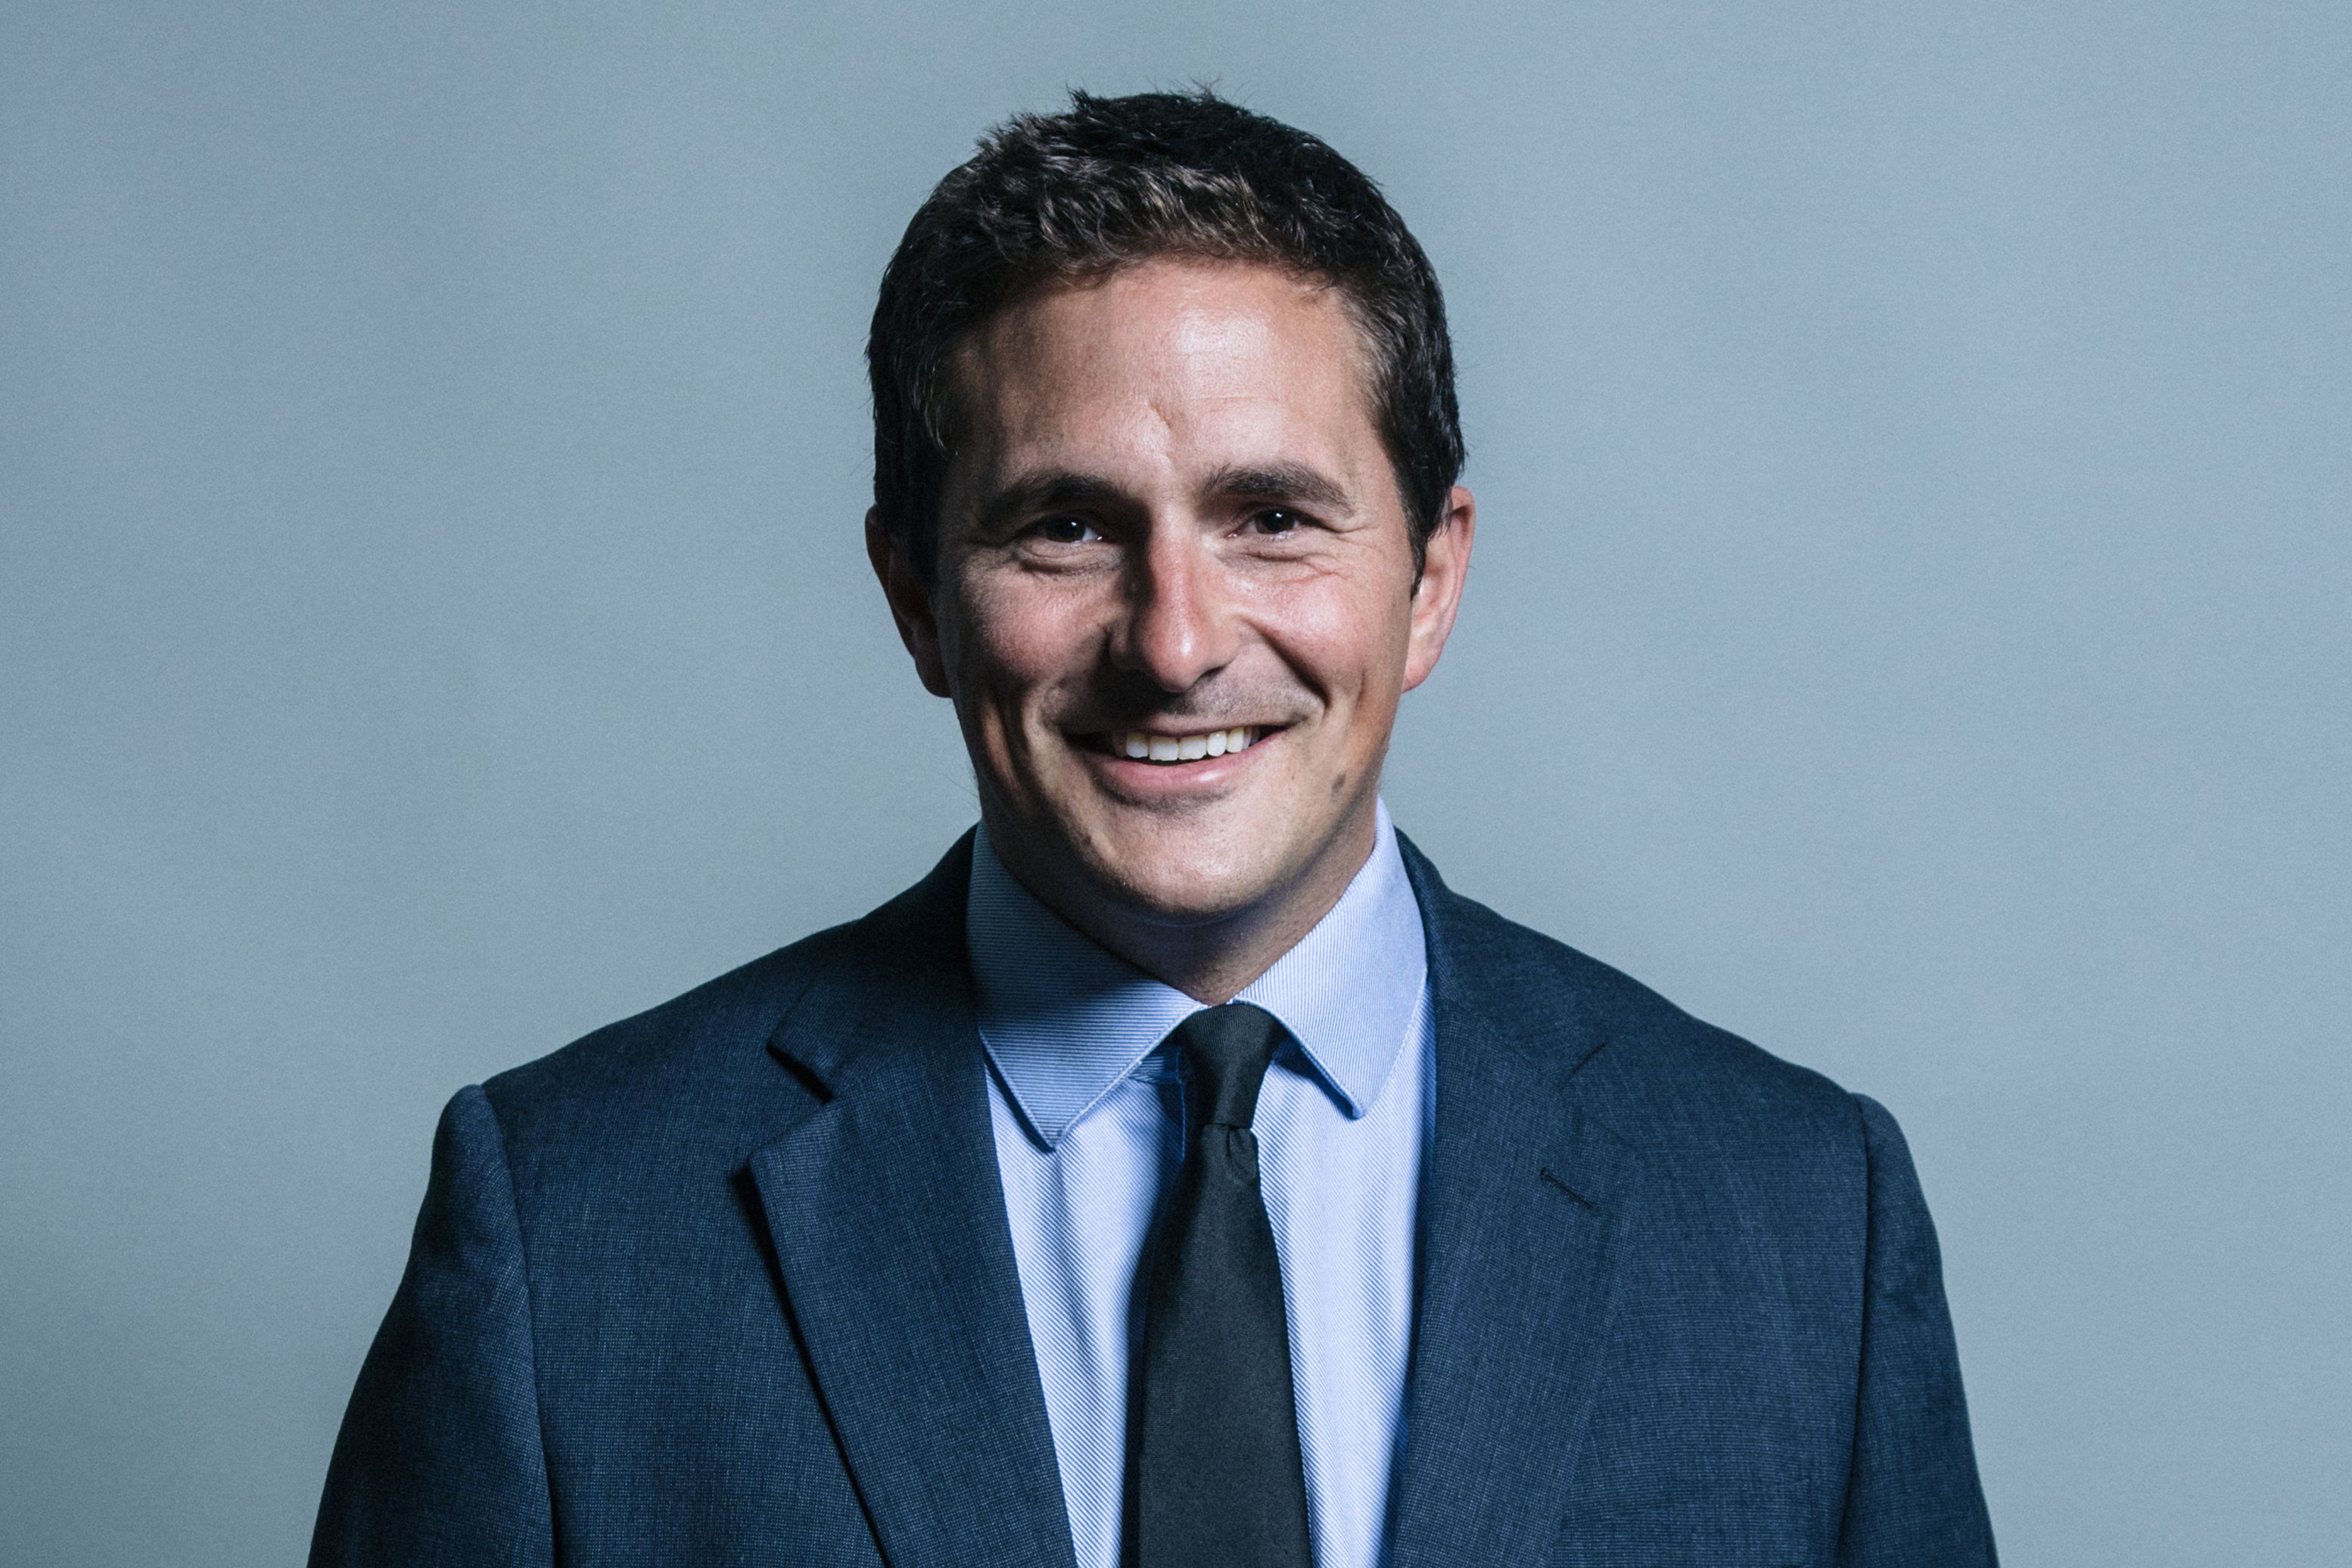 Johnny Mercer urged Theresa May to set out her vision for the UK (Chris McAndrew/UK Parliament/(Attribution 3.0 Unported (CC BY 3.0)/PA)